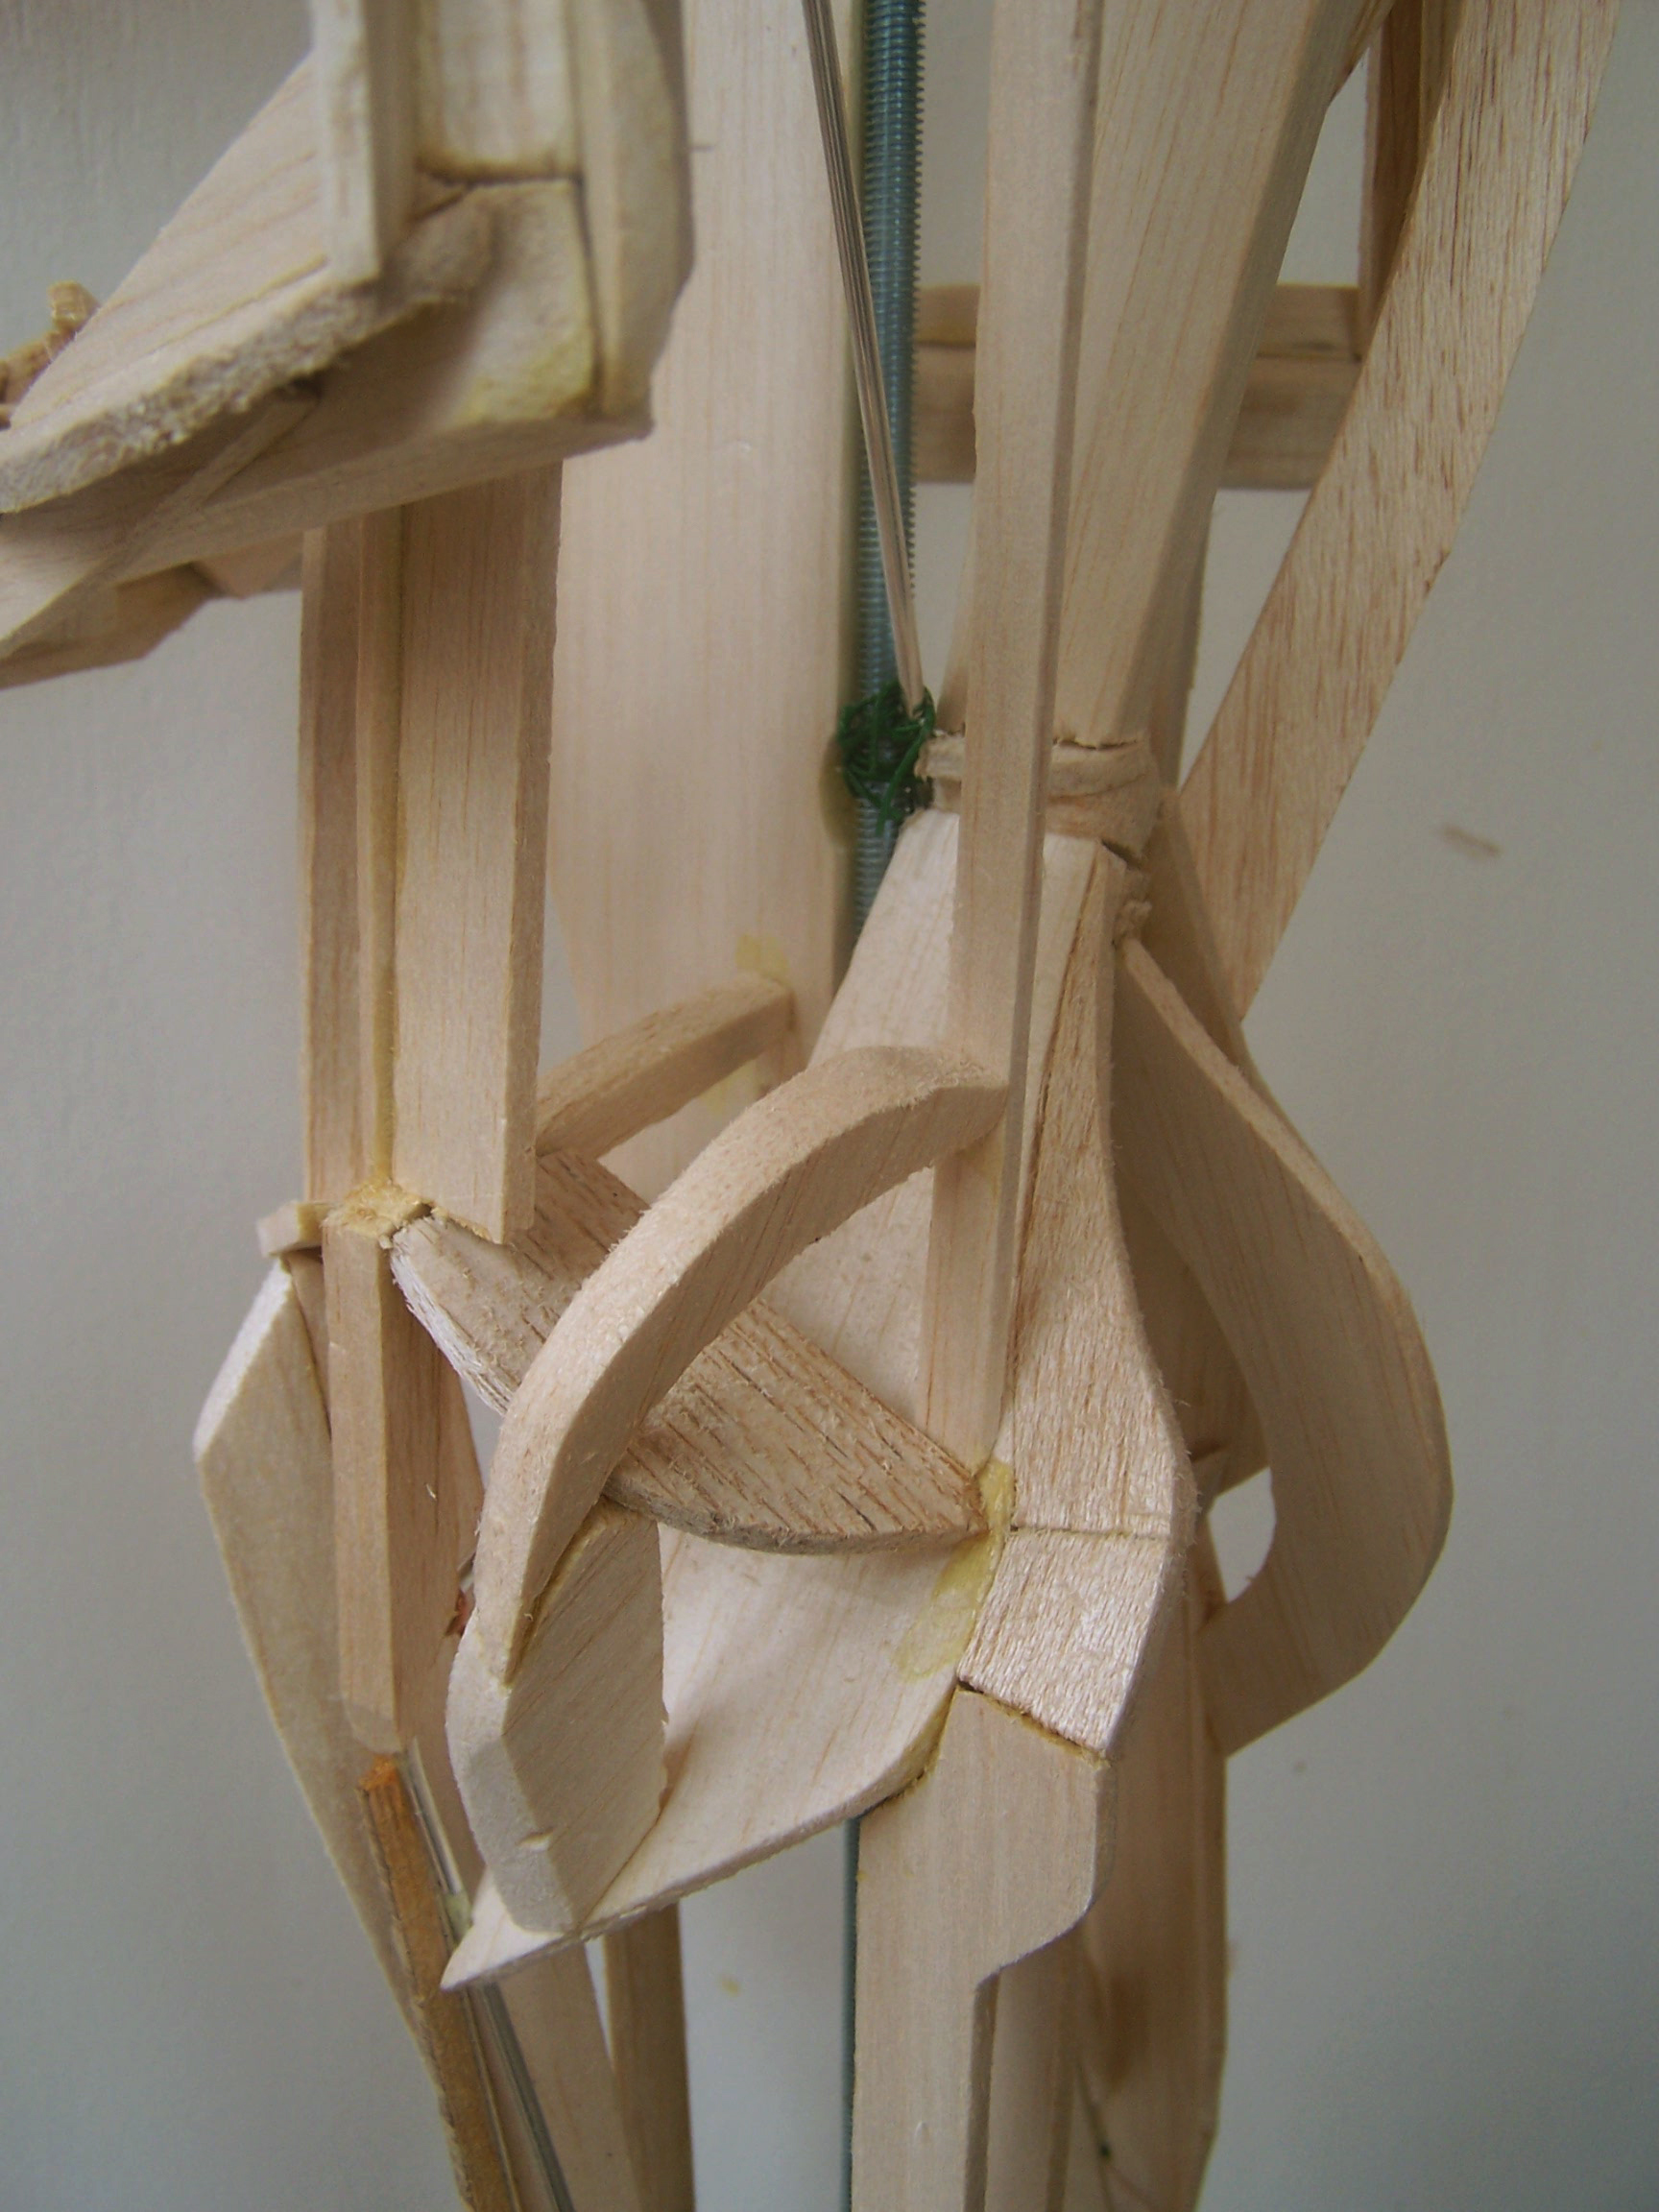 Work in progress, balsa wood and wire construction